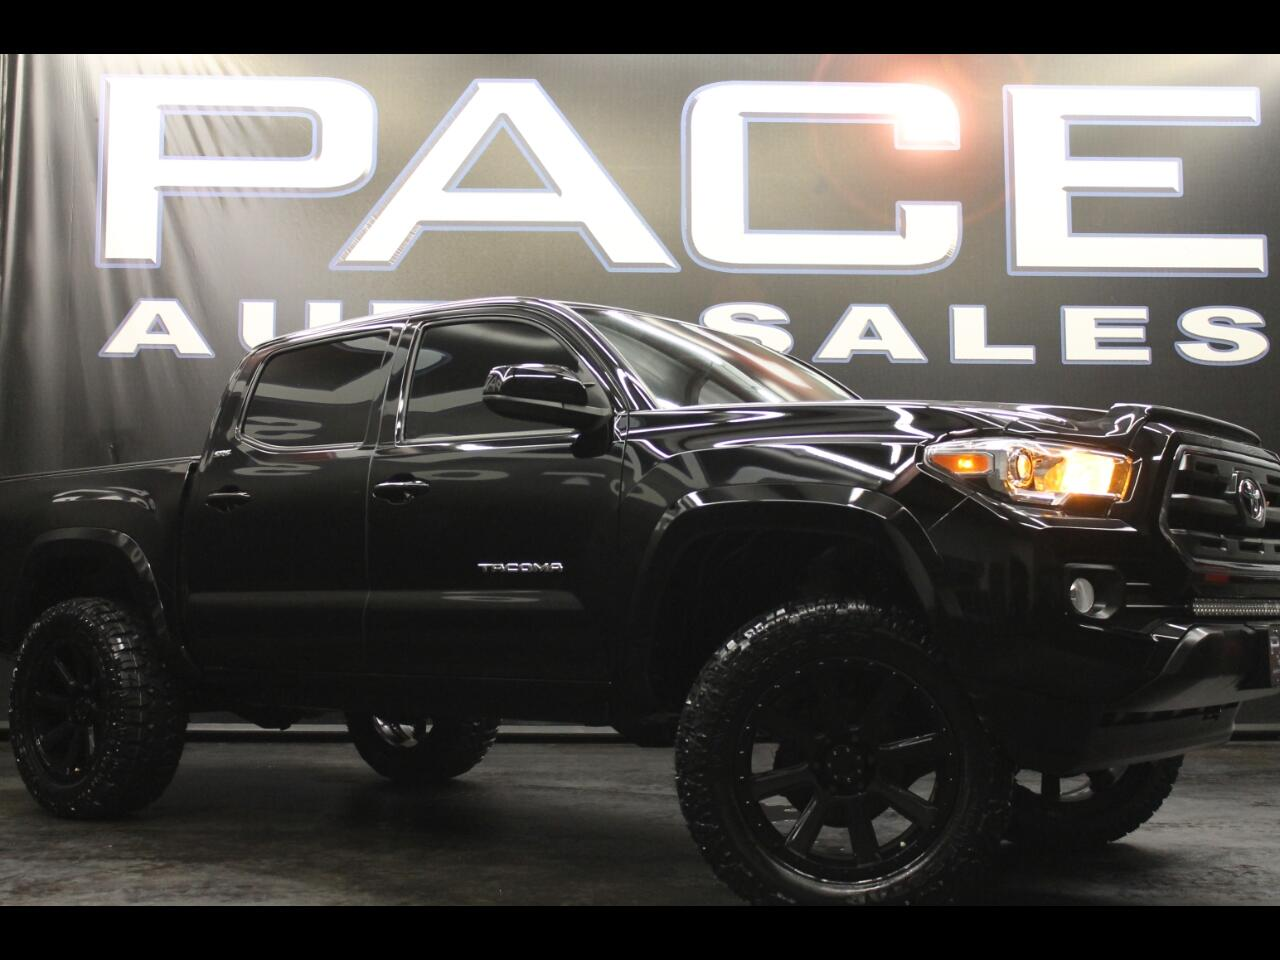 2017 Toyota Tacoma SR5 Double Cab 4x4 Lifted Custom